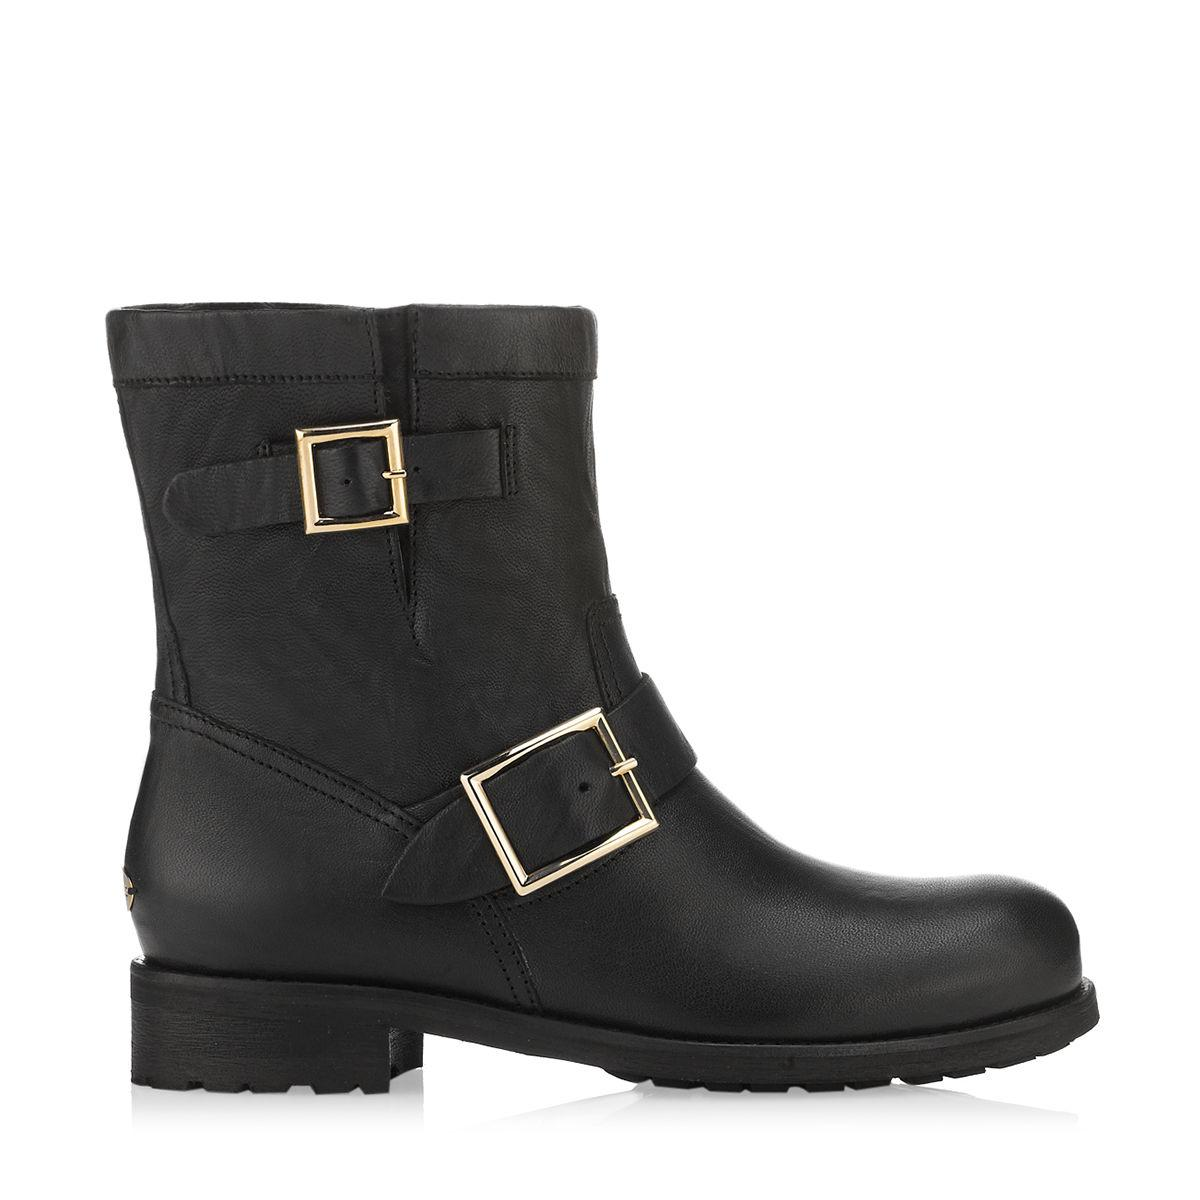 Jimmy Choo Leather Youth Buckled Biker Boot in Black - Save 17%